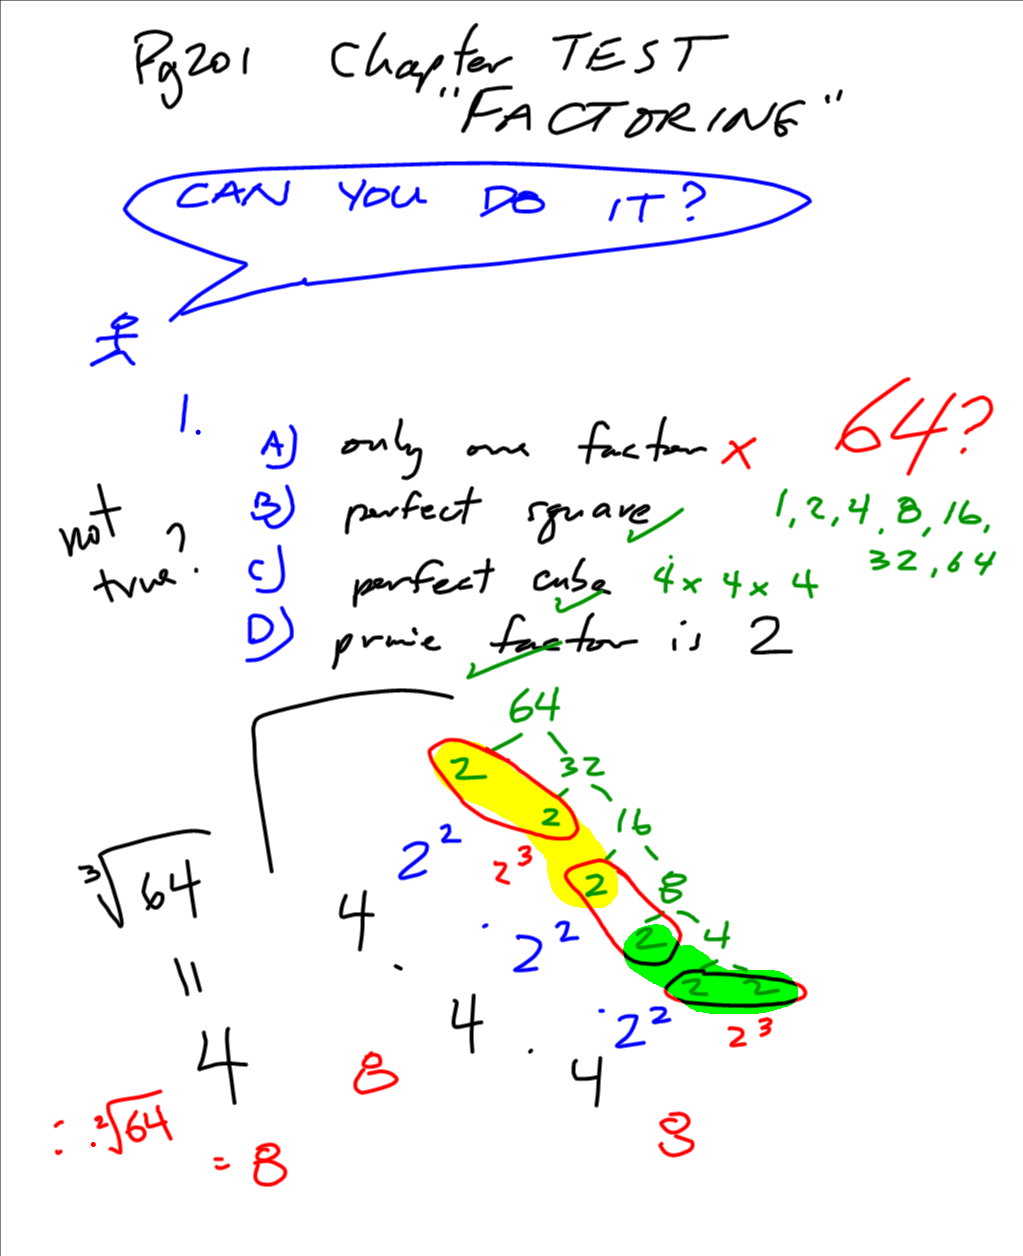 factoring review Factoring: gcf/trinomial/difference of perfect squares/factor complete [ smart notebook lesson] fun way to review or complete practice problems for factoring found a similar lesson on smart exc subject: mathematics grade: grade 8, grade 9, grade 10, grade 11, grade 12 submitted by: cdubs search terms:.